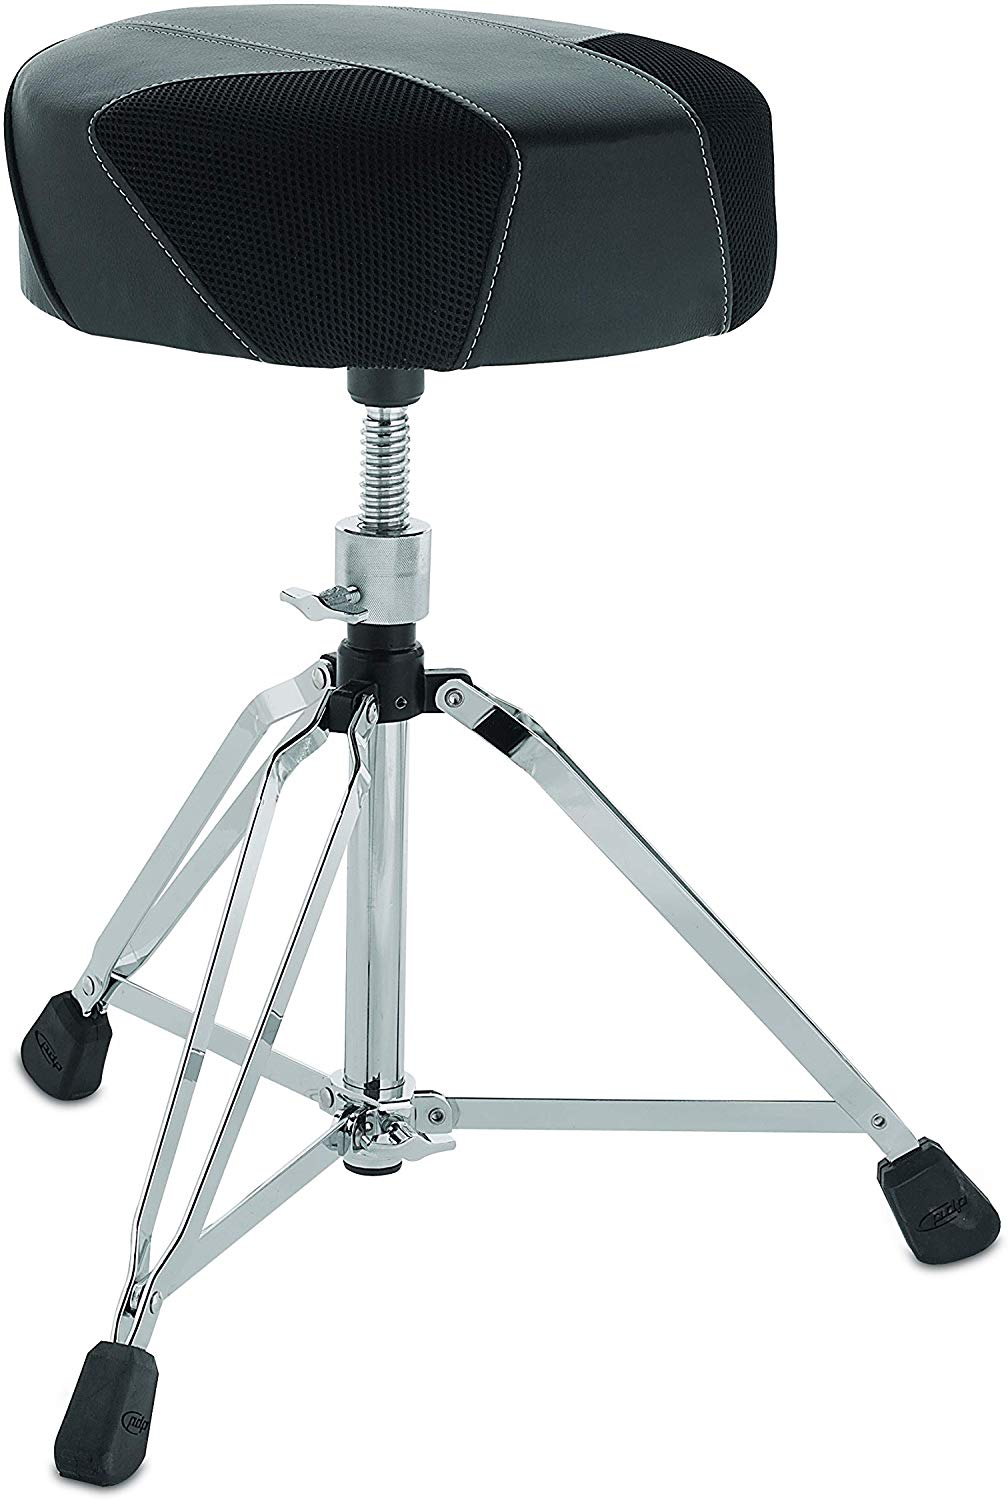 Pacific Drums and Percussion PDDTC00 Concept Throne